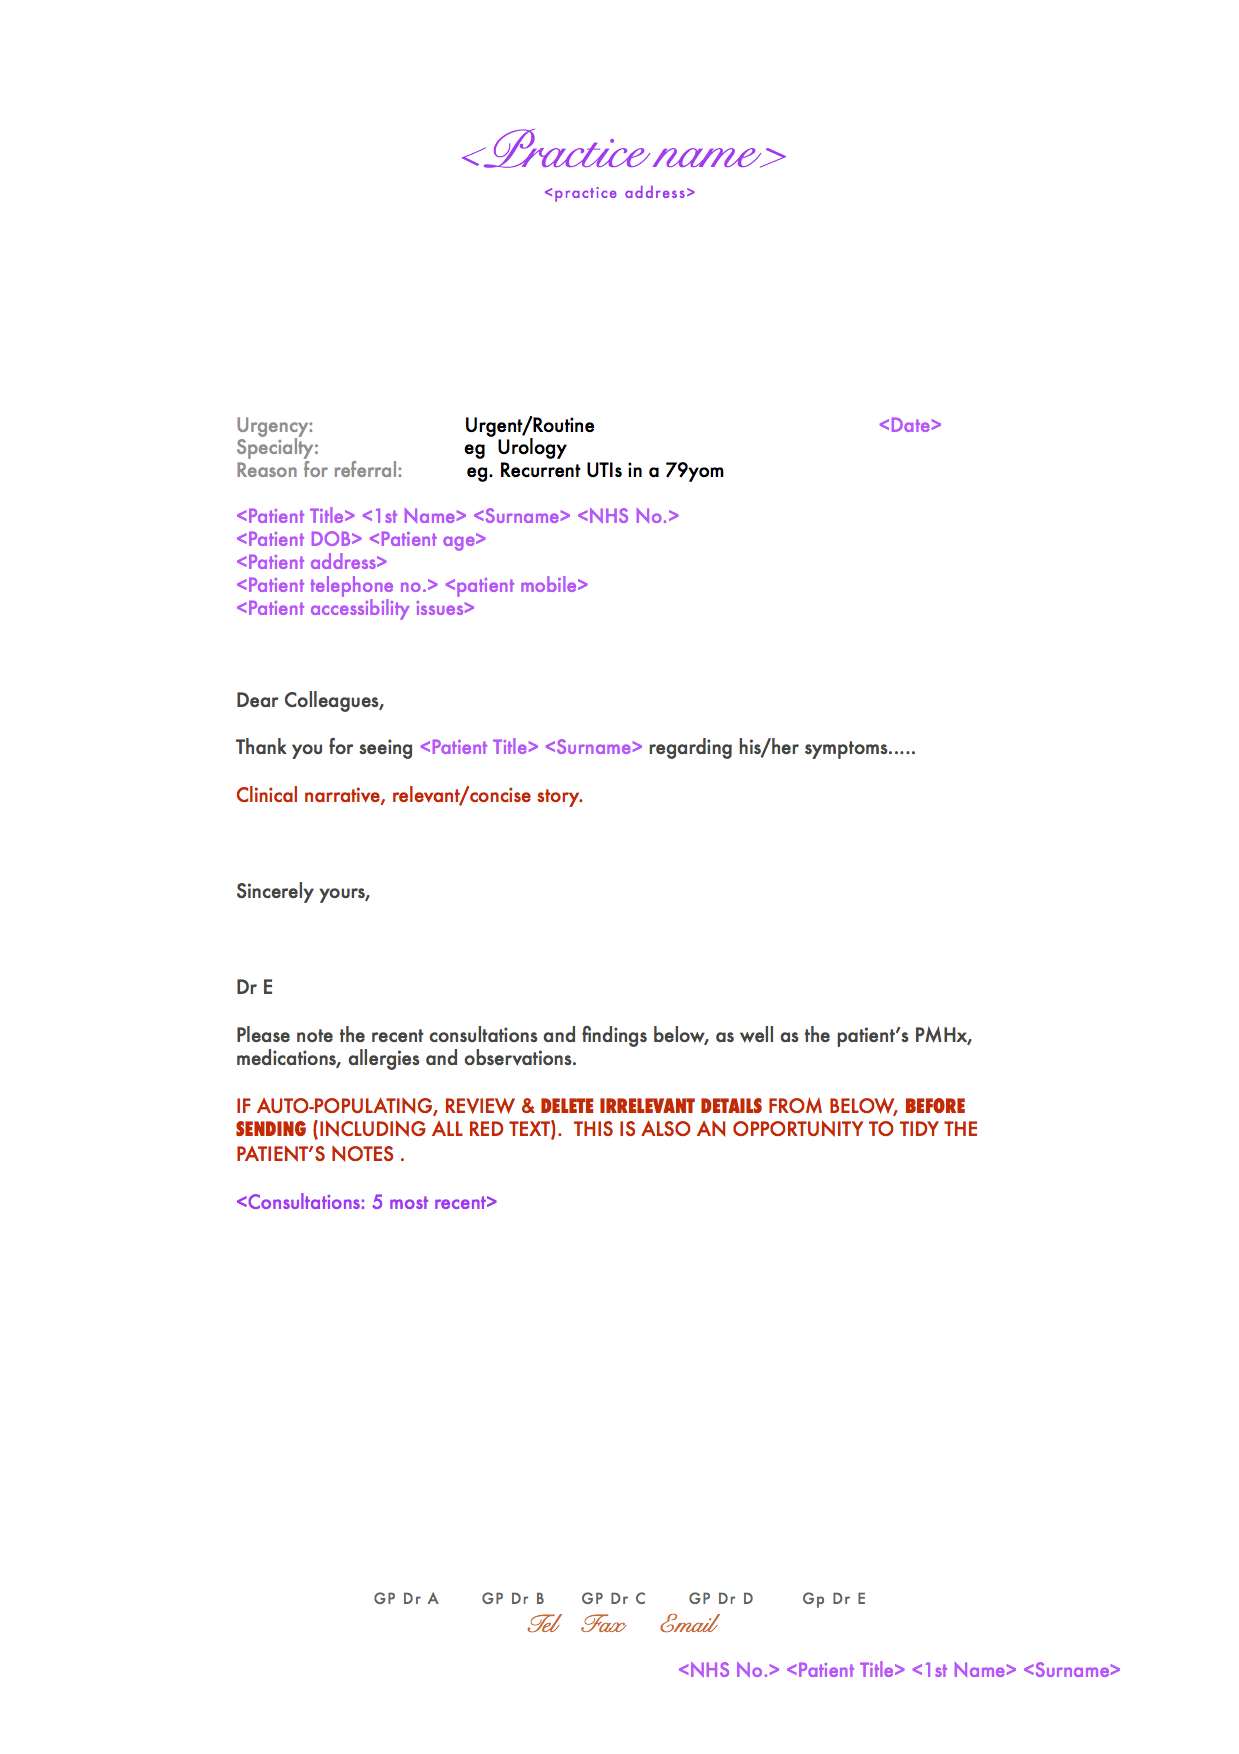 Referral Letter Template Draft Minimum Dataset V1 27 10